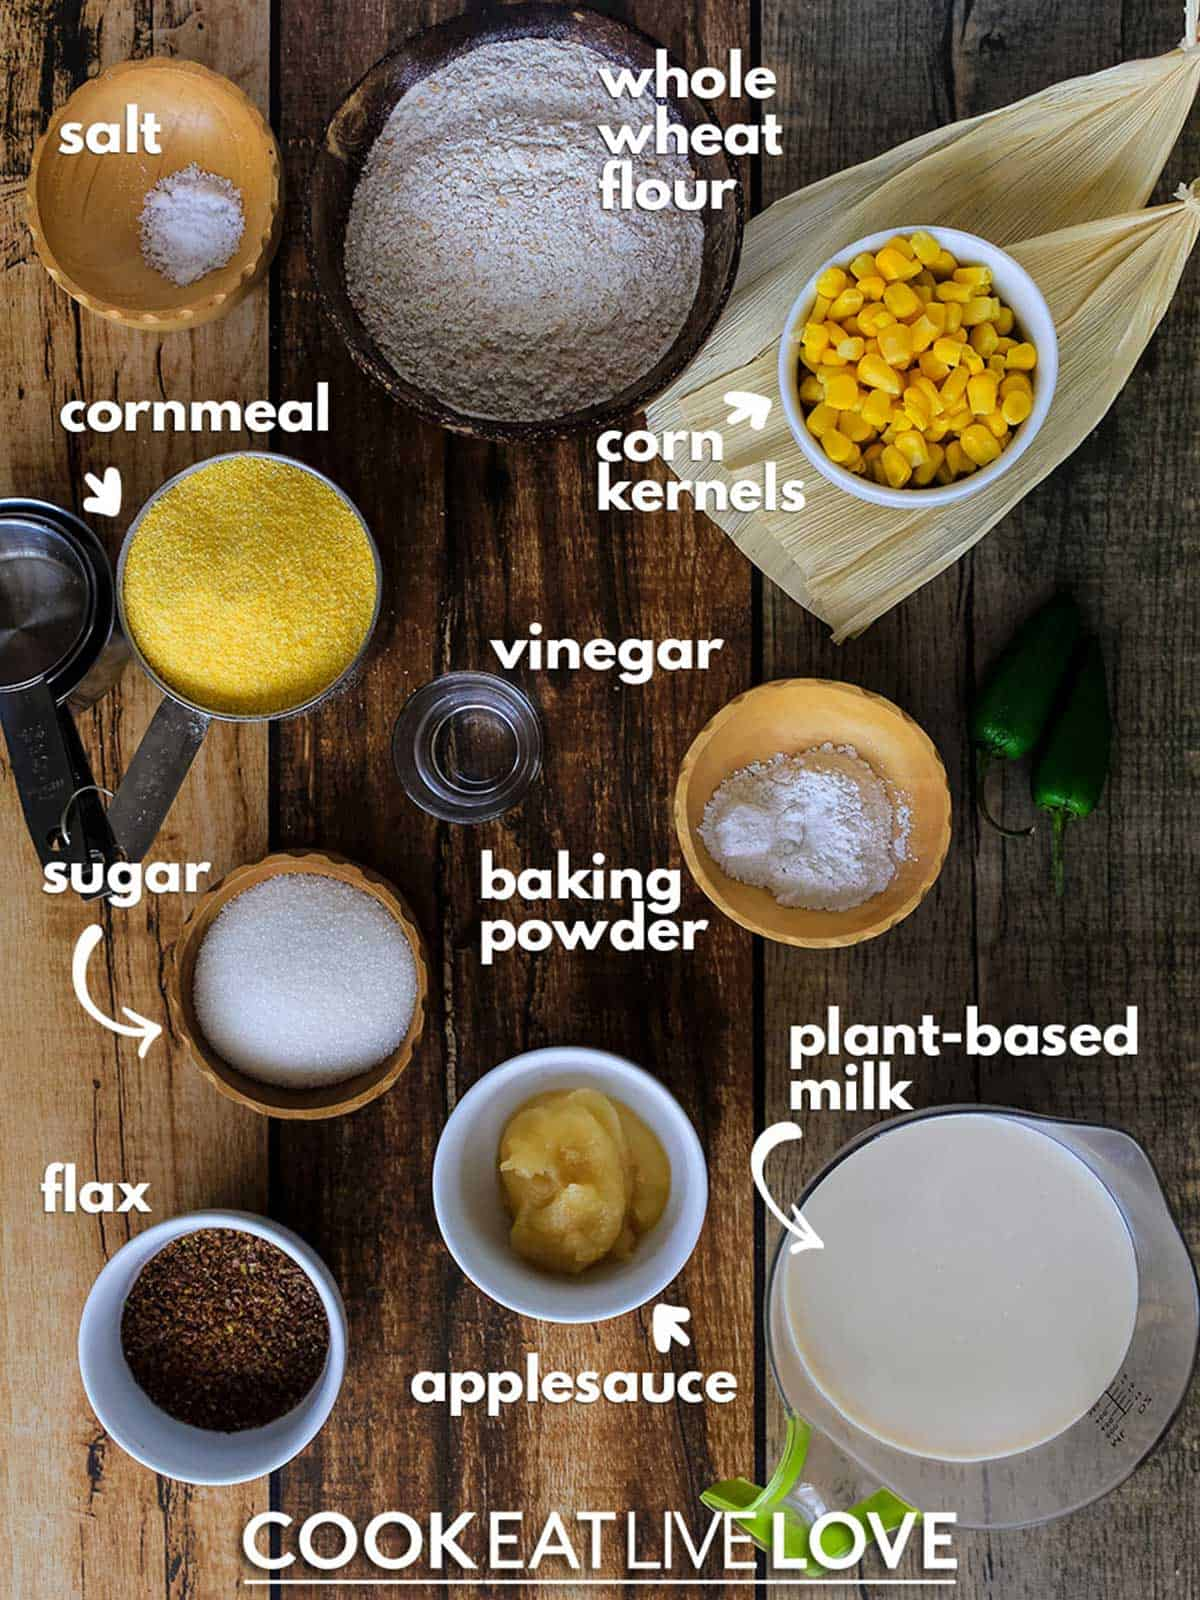 Overhead view of ingredients with labels to make this cornbread recipe.